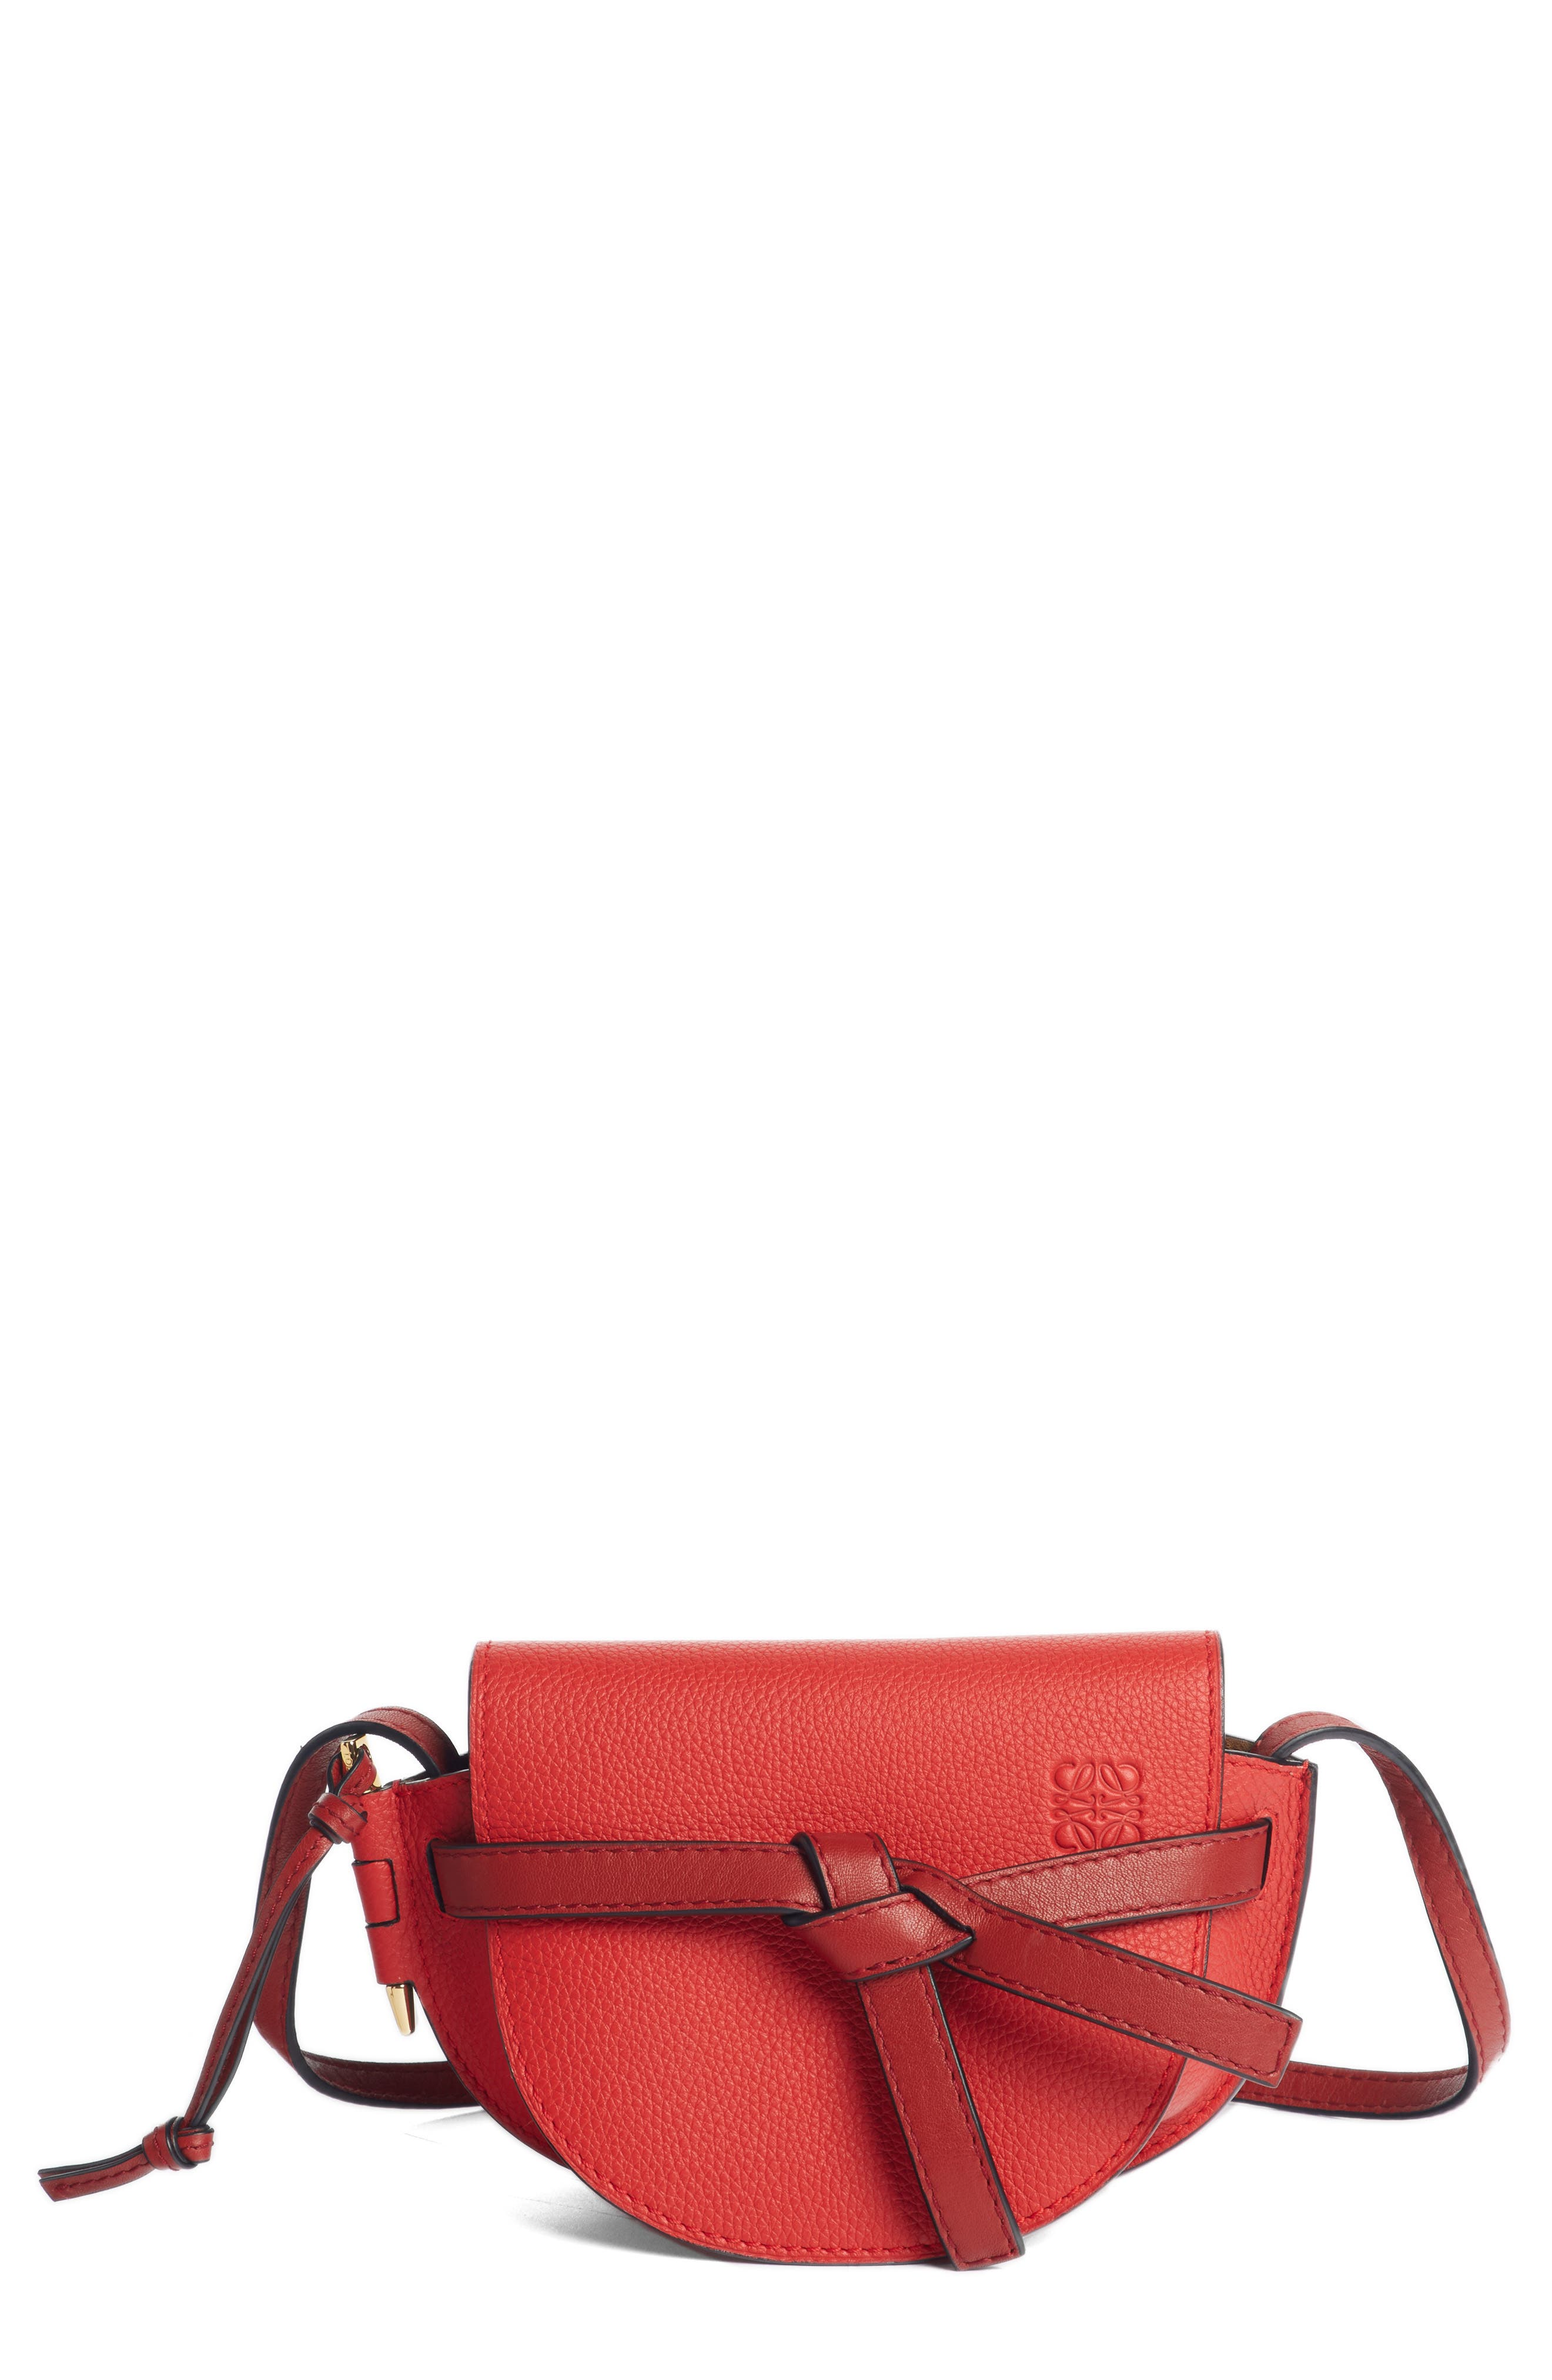 Small Gate Leather Crossbody Bag,                         Main,                         color, SCARLET RED/ BURNT RED